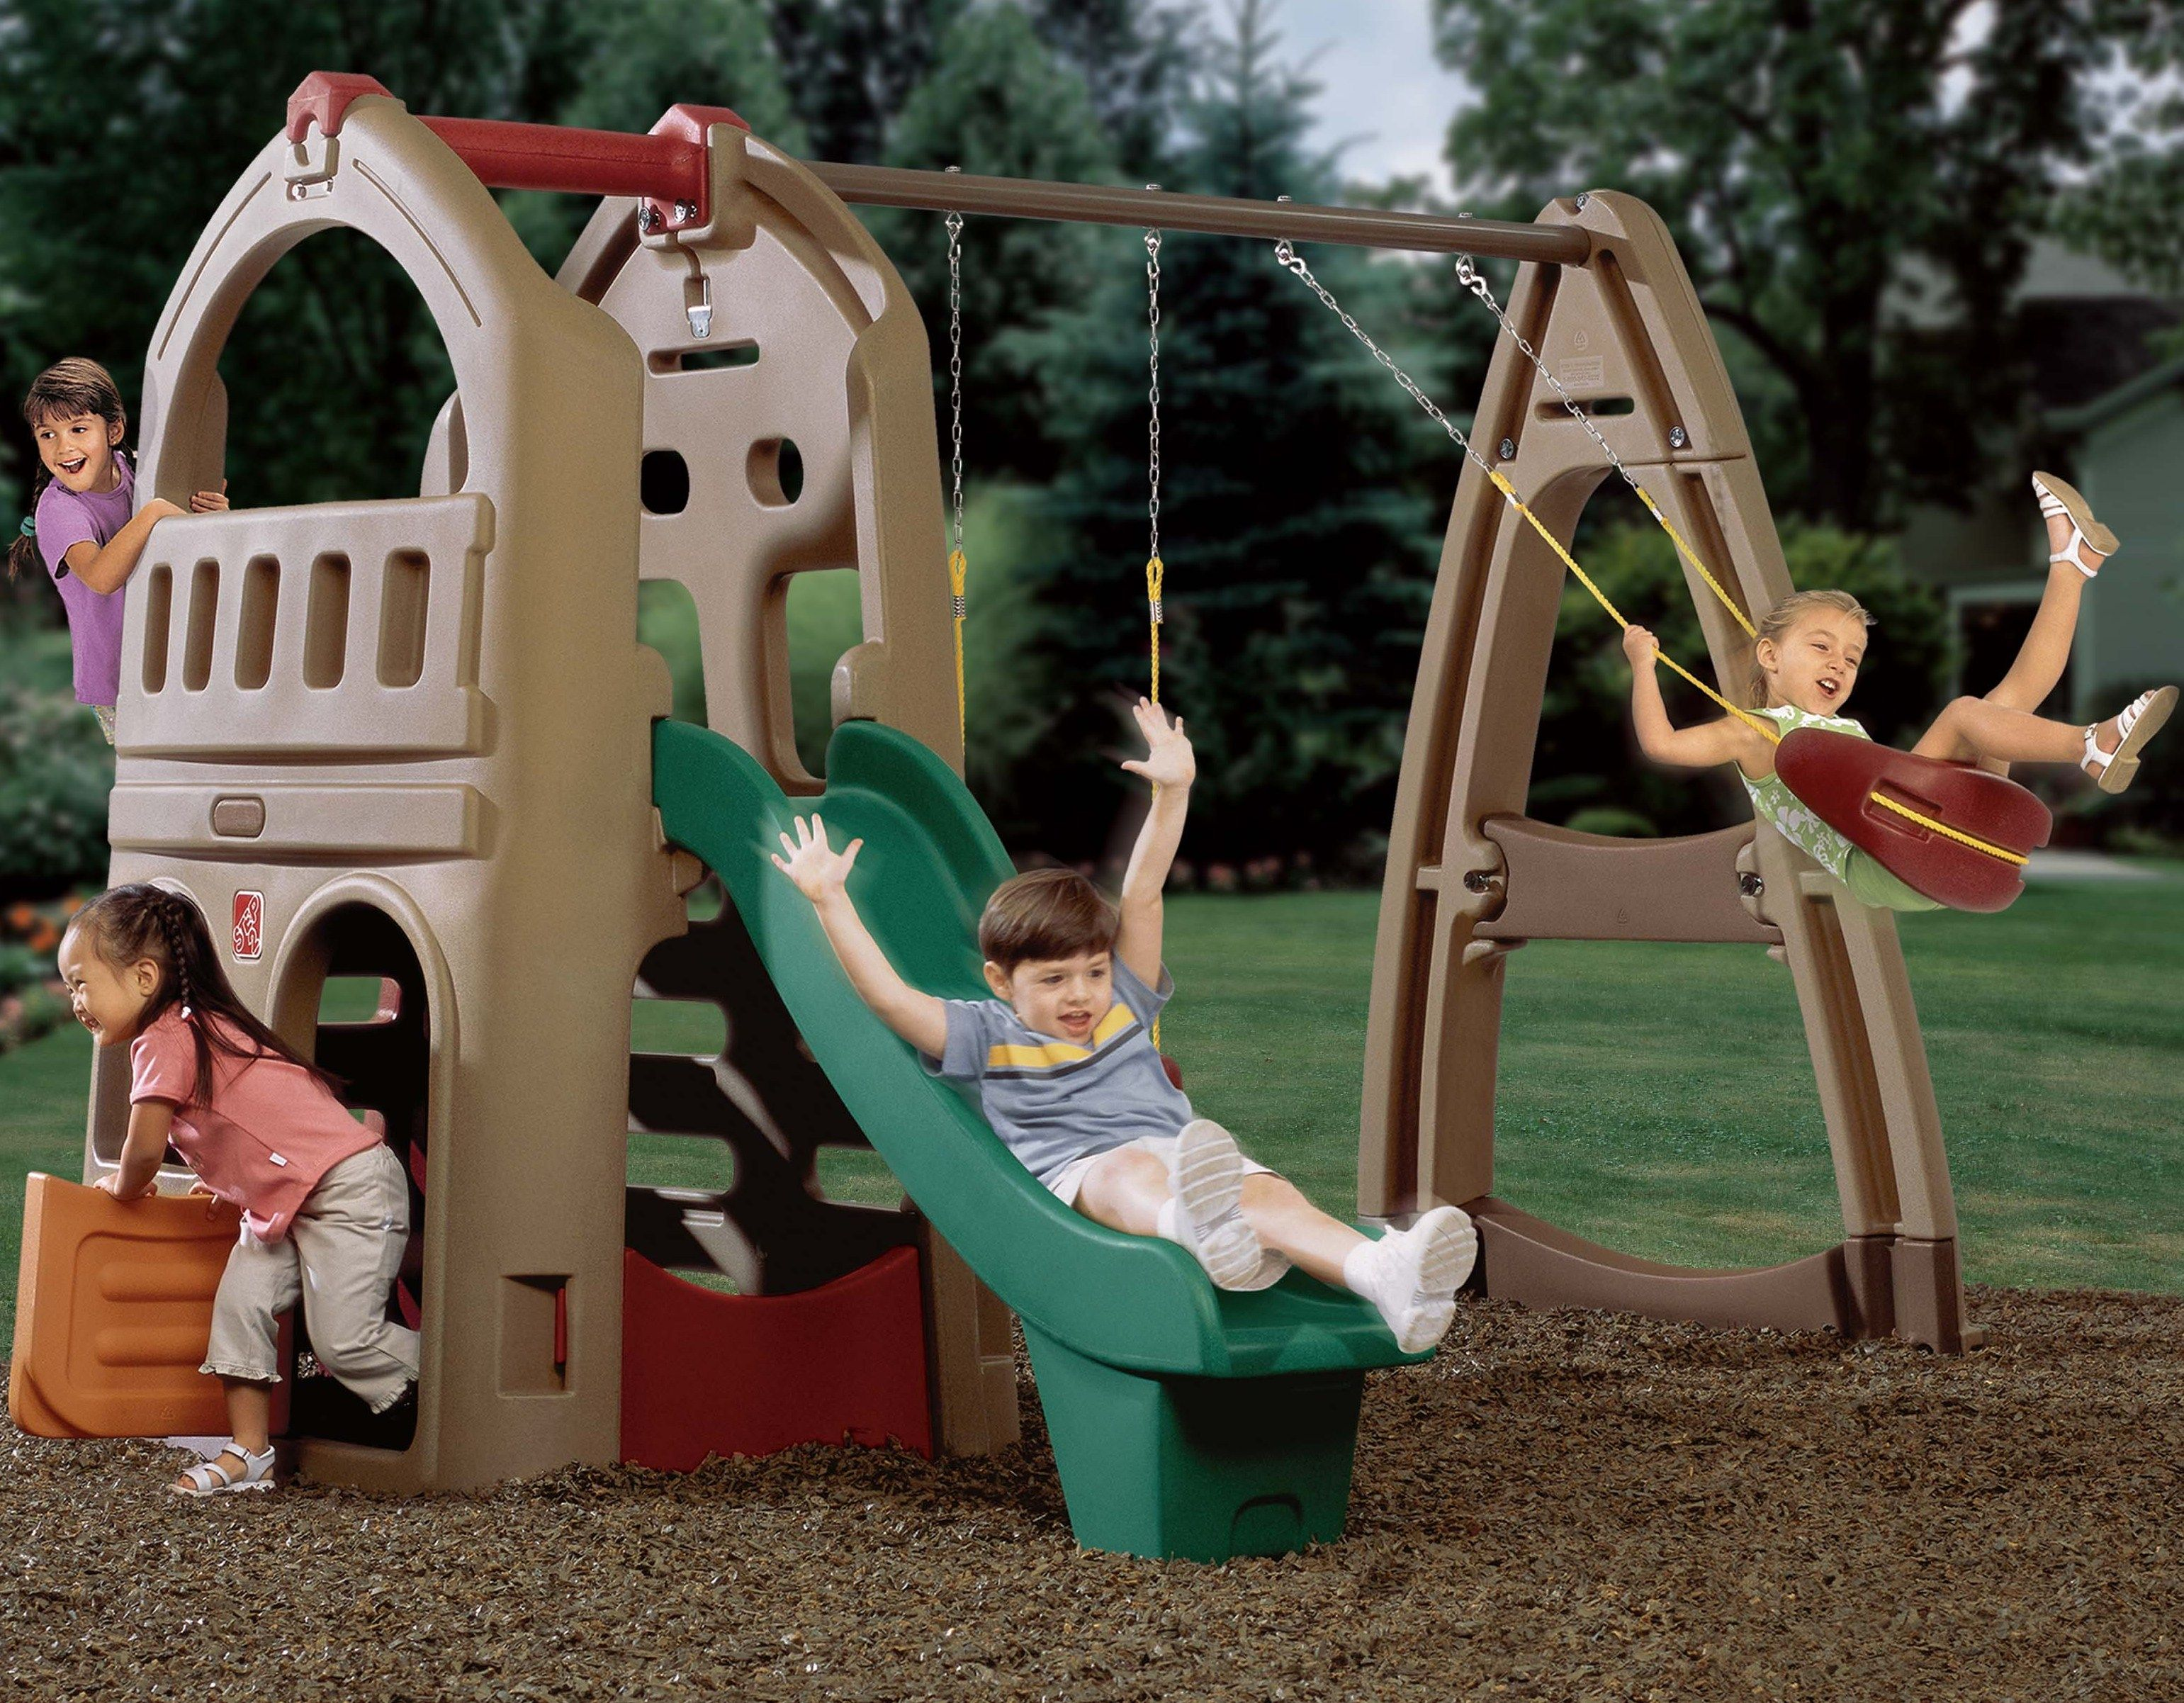 Children's backyard playhouse climber with slide and swing set in natural colors with dutch door and hideaway.